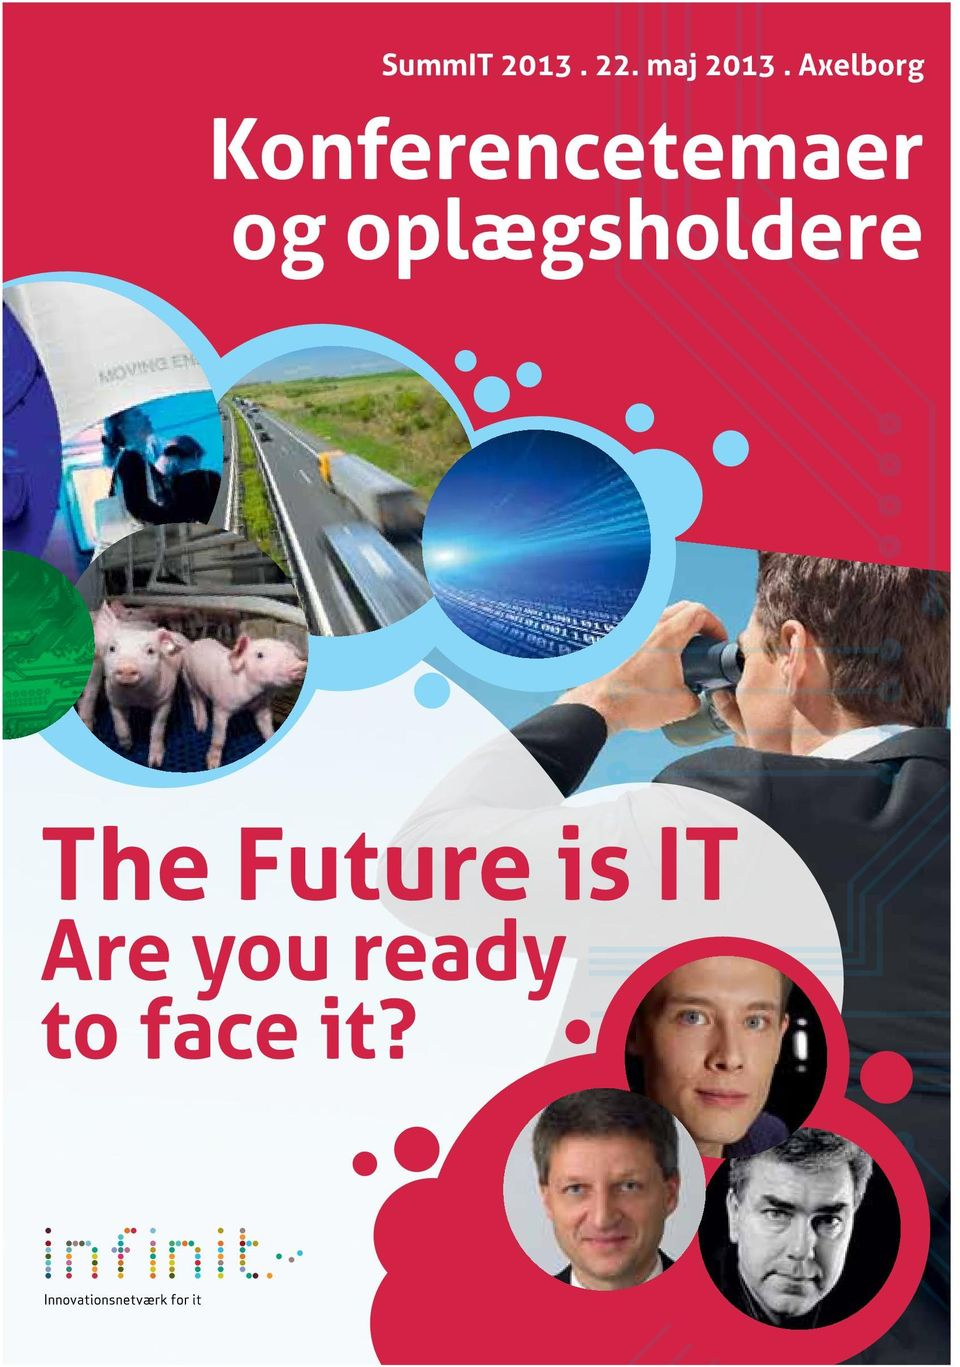 og oplægsholdere The Future